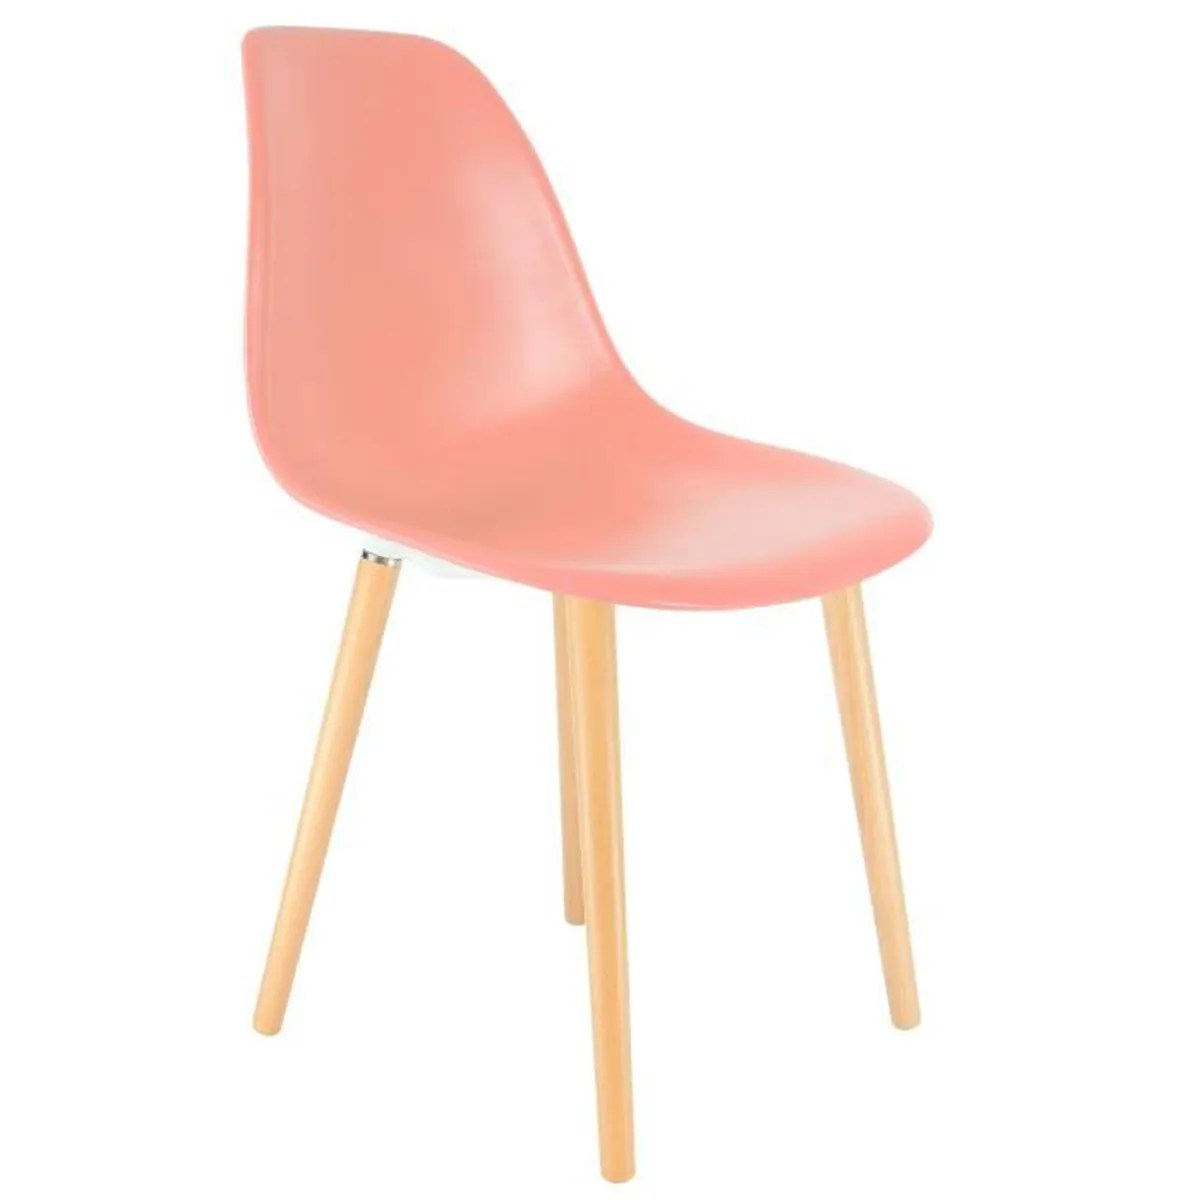 Chaises Privee Chaise Privee Chaise Stw Corail Naturel Achat